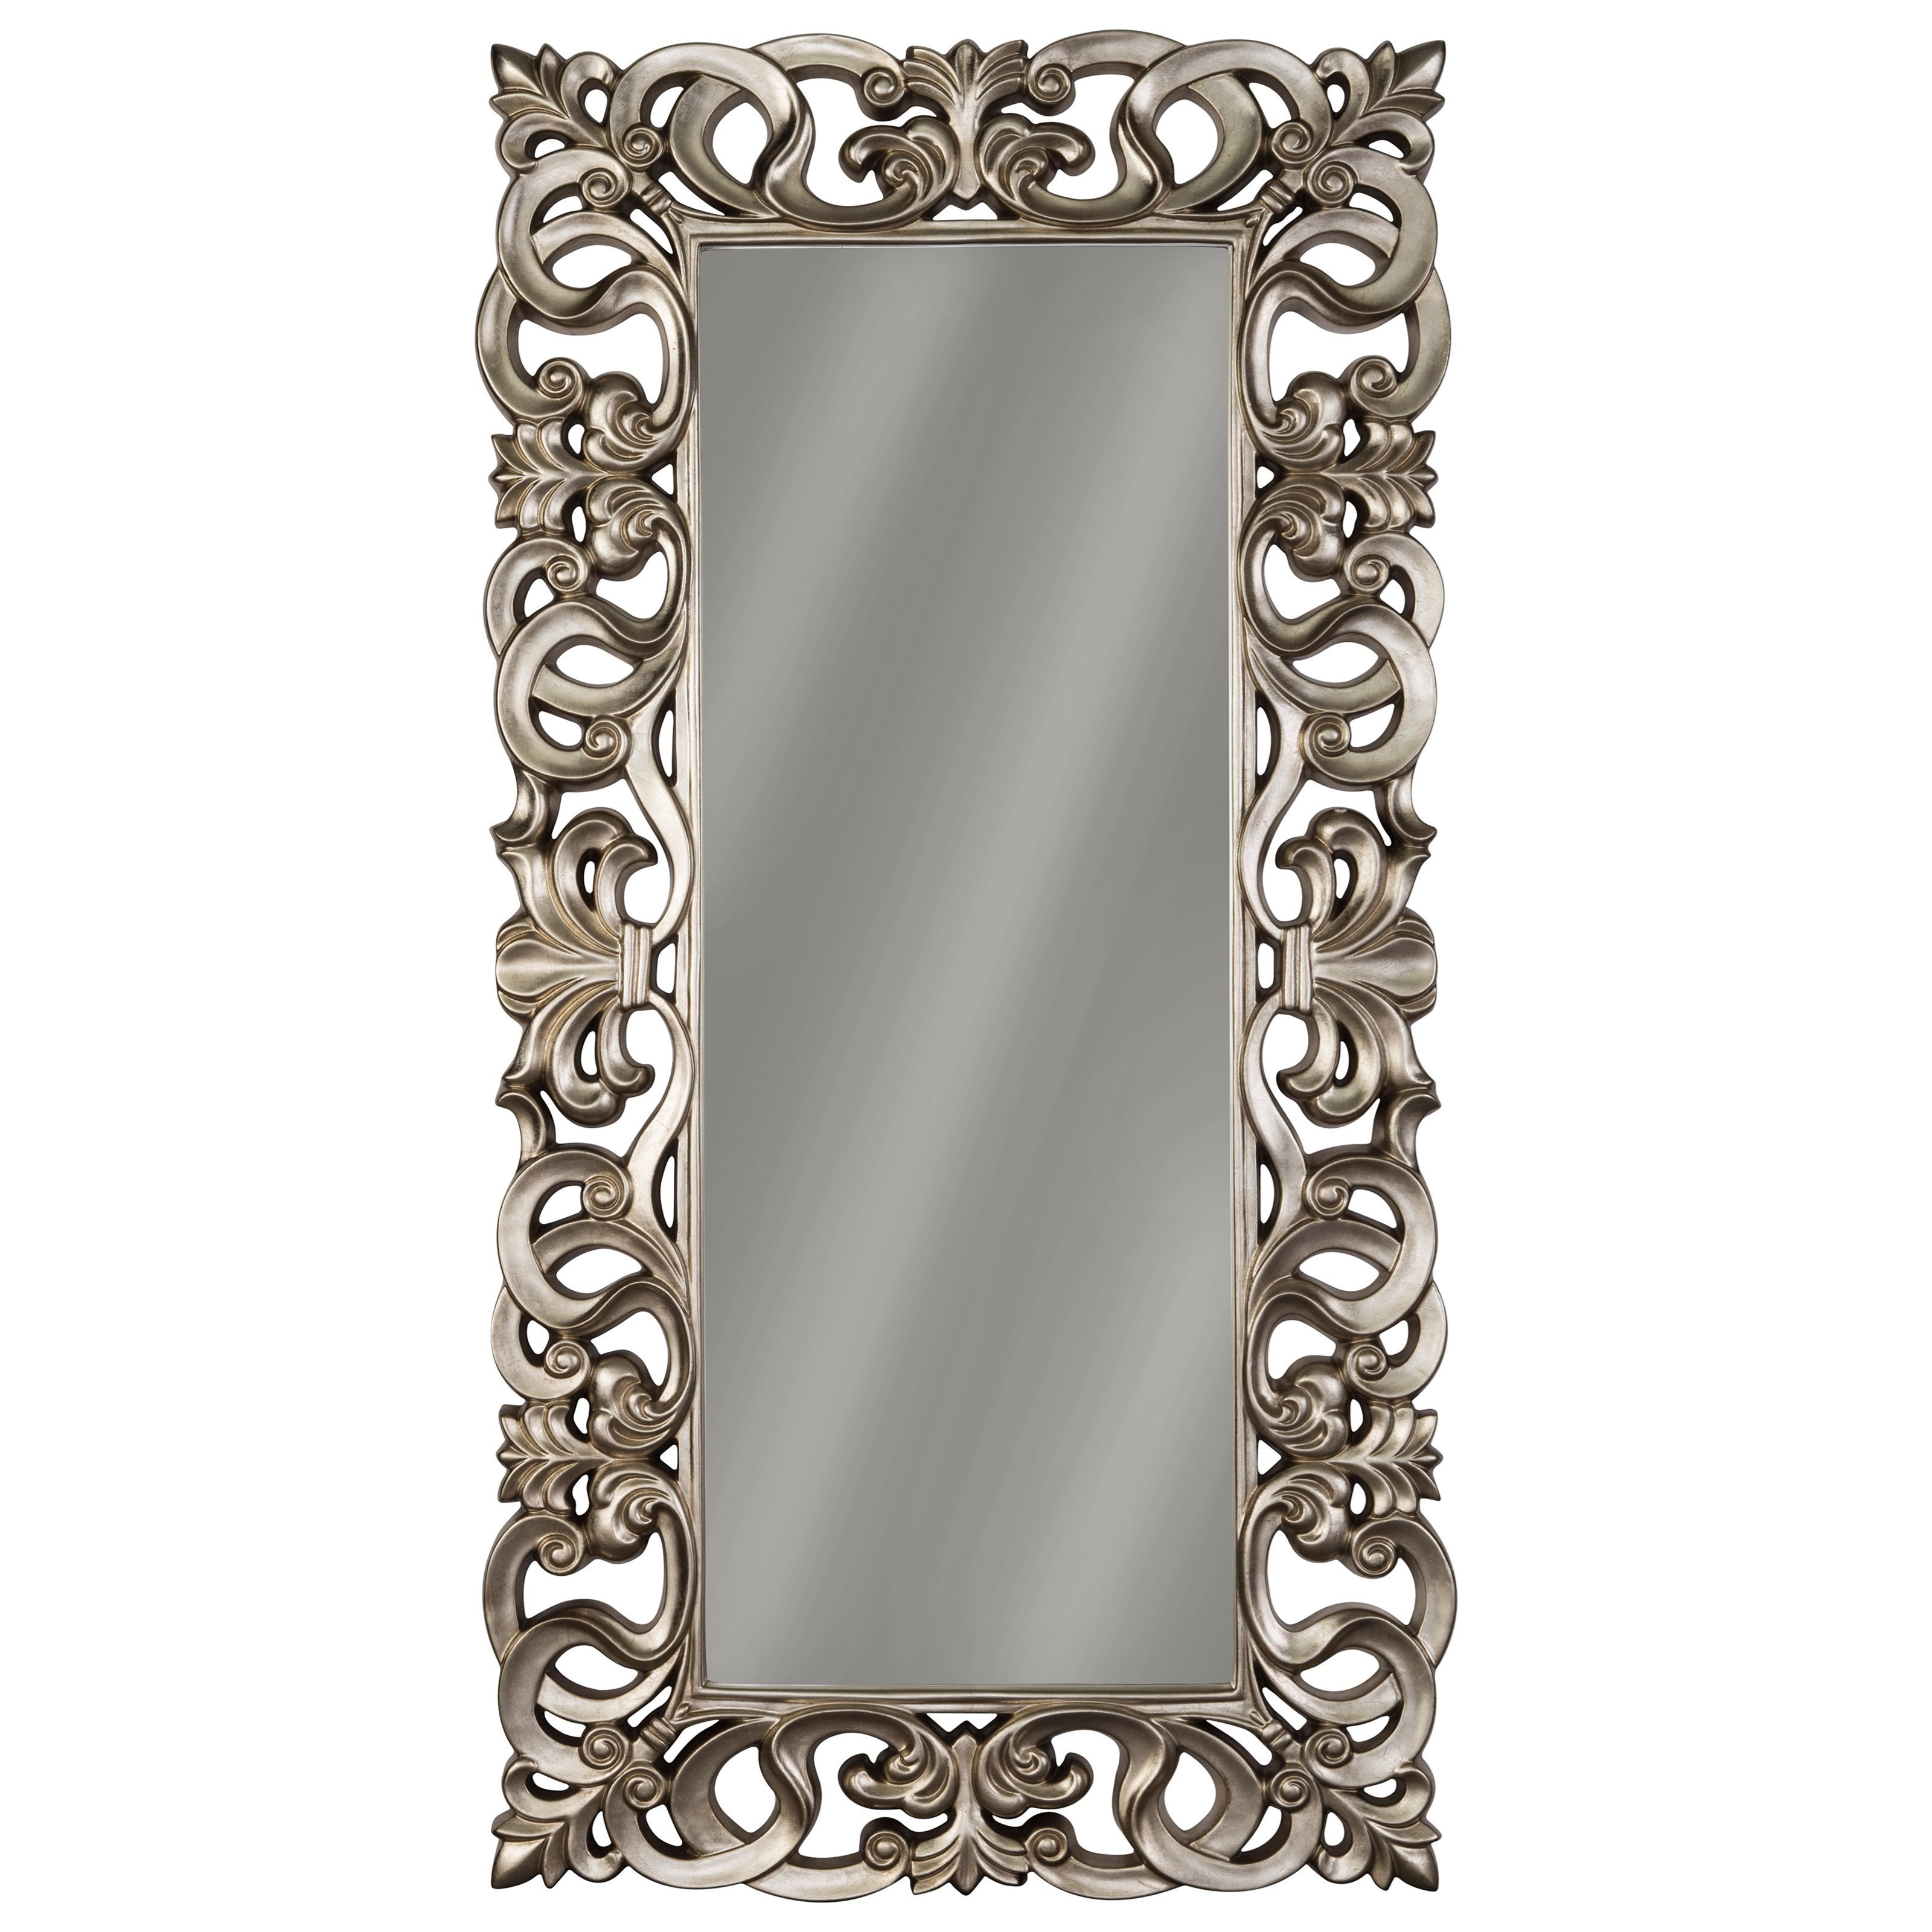 Signature Design By Ashley Accent Mirrors Lucia Antique Silver Finish Accent Mirror Royal Furniture Floor Mirrors